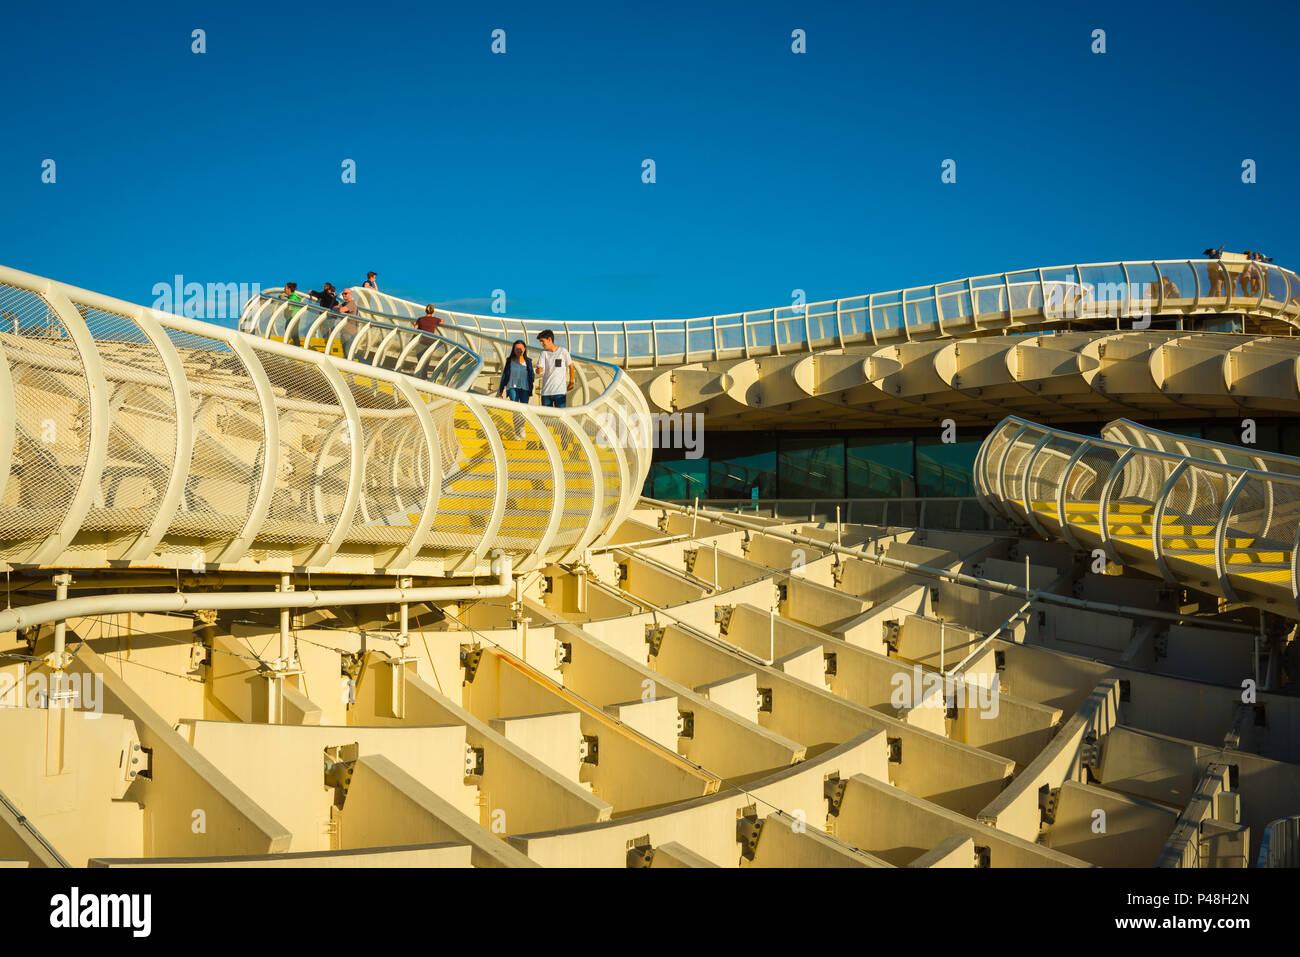 Spain modern architecture, view of people traversing the walkway on top of the Metropol Parasol (Las Setas) in Seville (Sevilla), Andalucia, Spain. - Stock Image